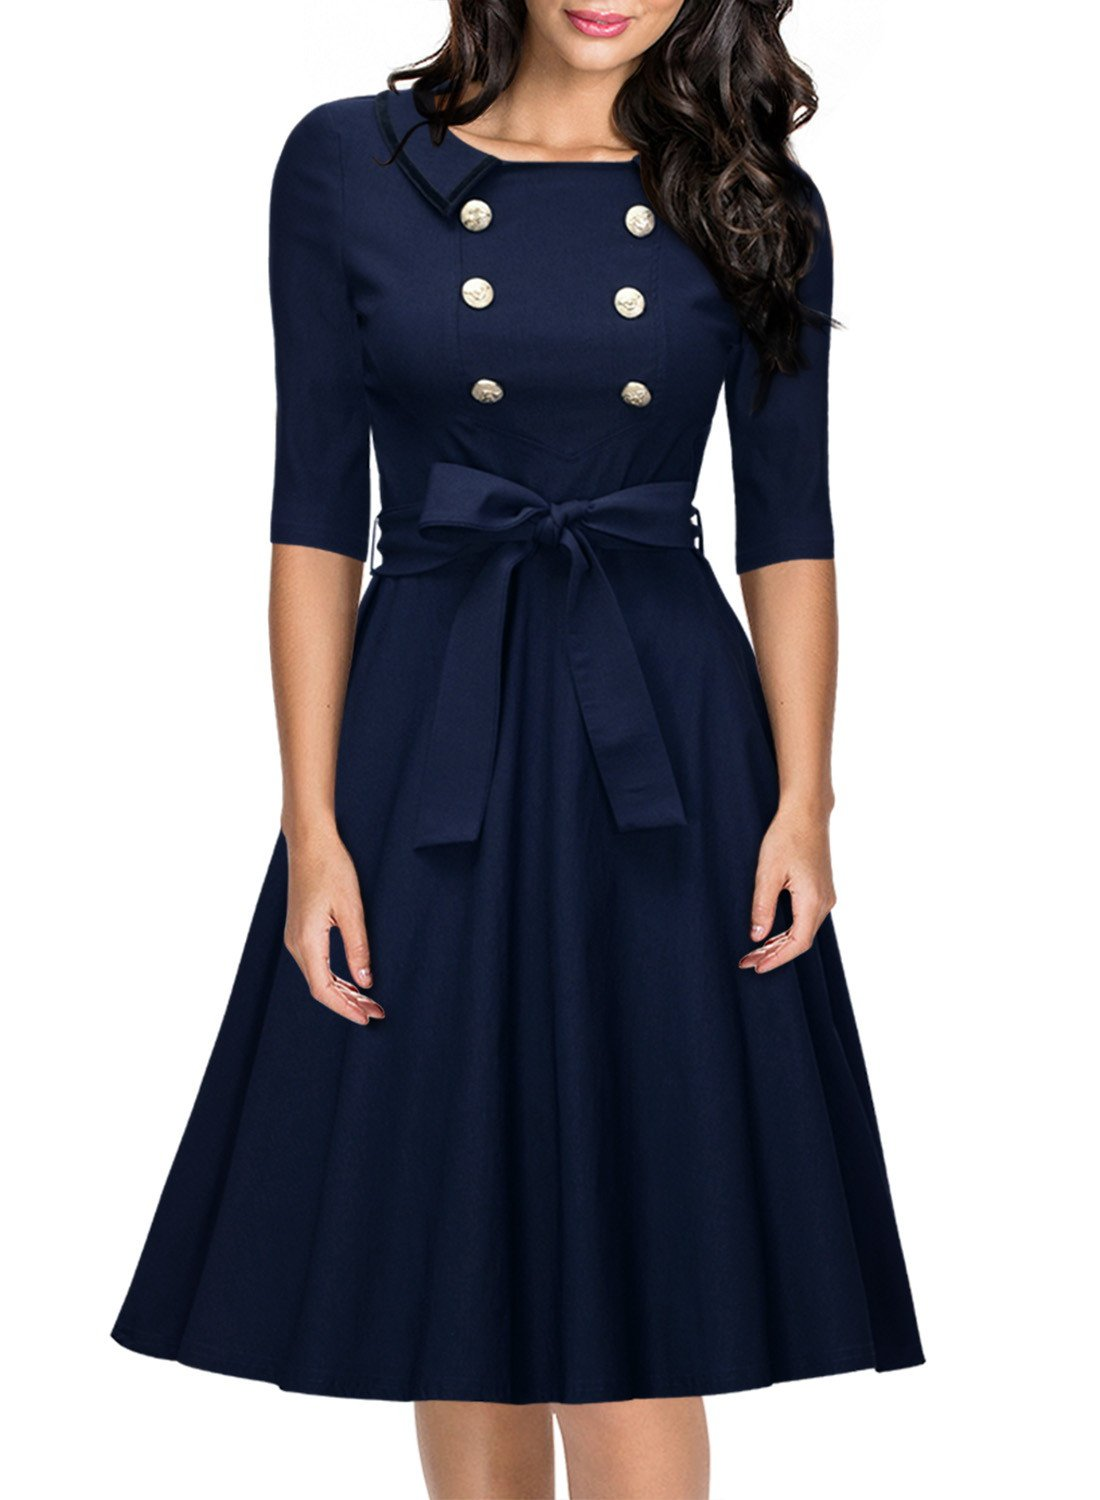 Miusol Women's 3/4 Sleeve Classy Casual Belted Vintage Retro Evening Swing Dress Navy Blue Large